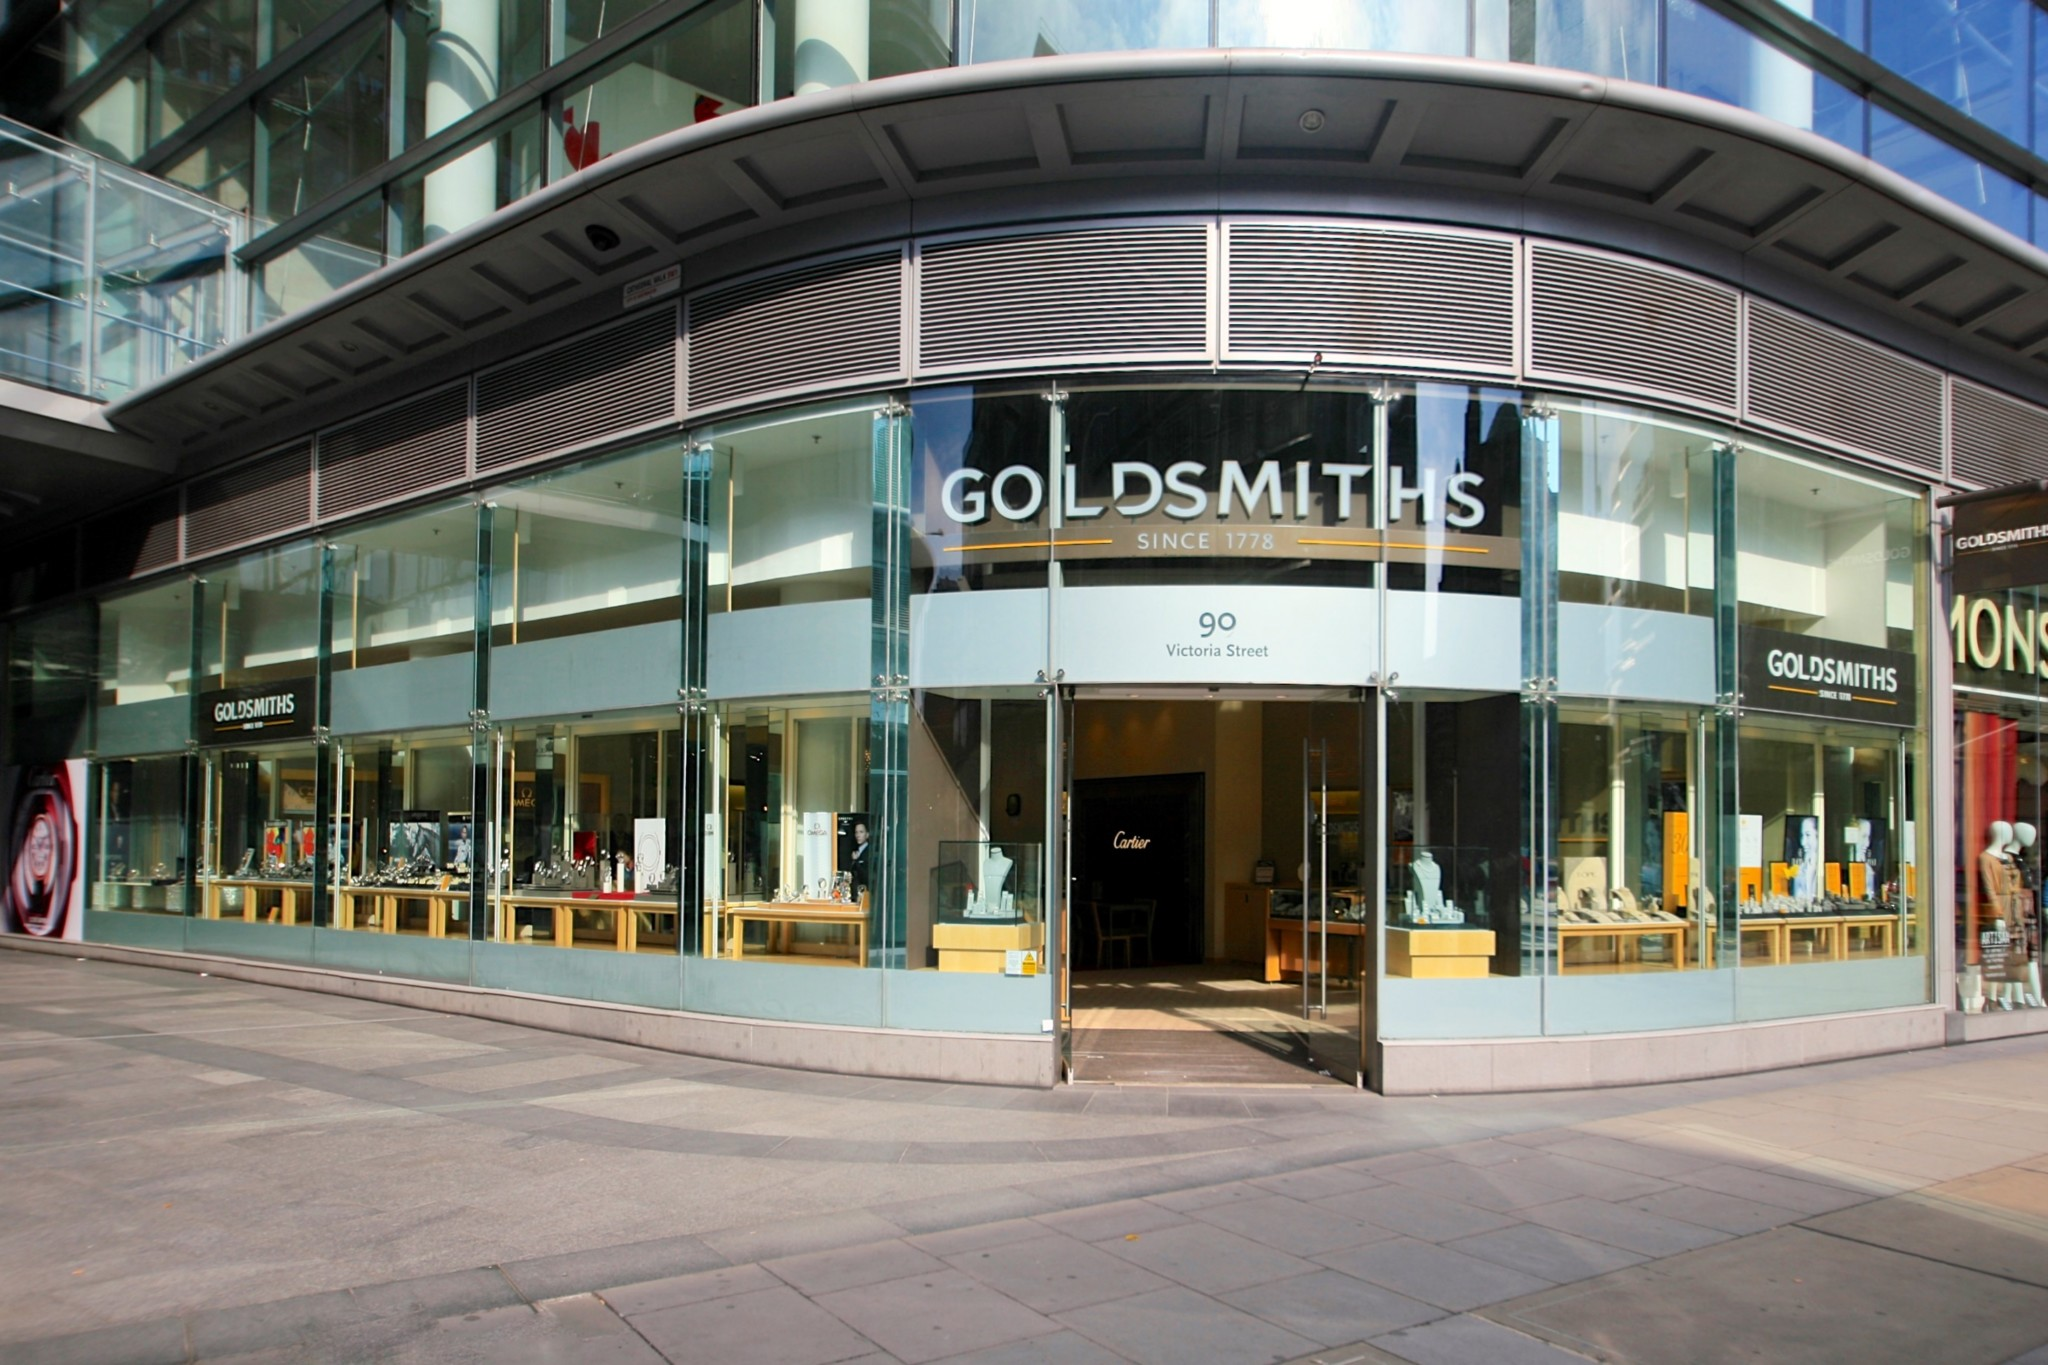 Goldsmiths has been opening new stores and refurbishing others in a programme of creating a luxury environment for watch sales.